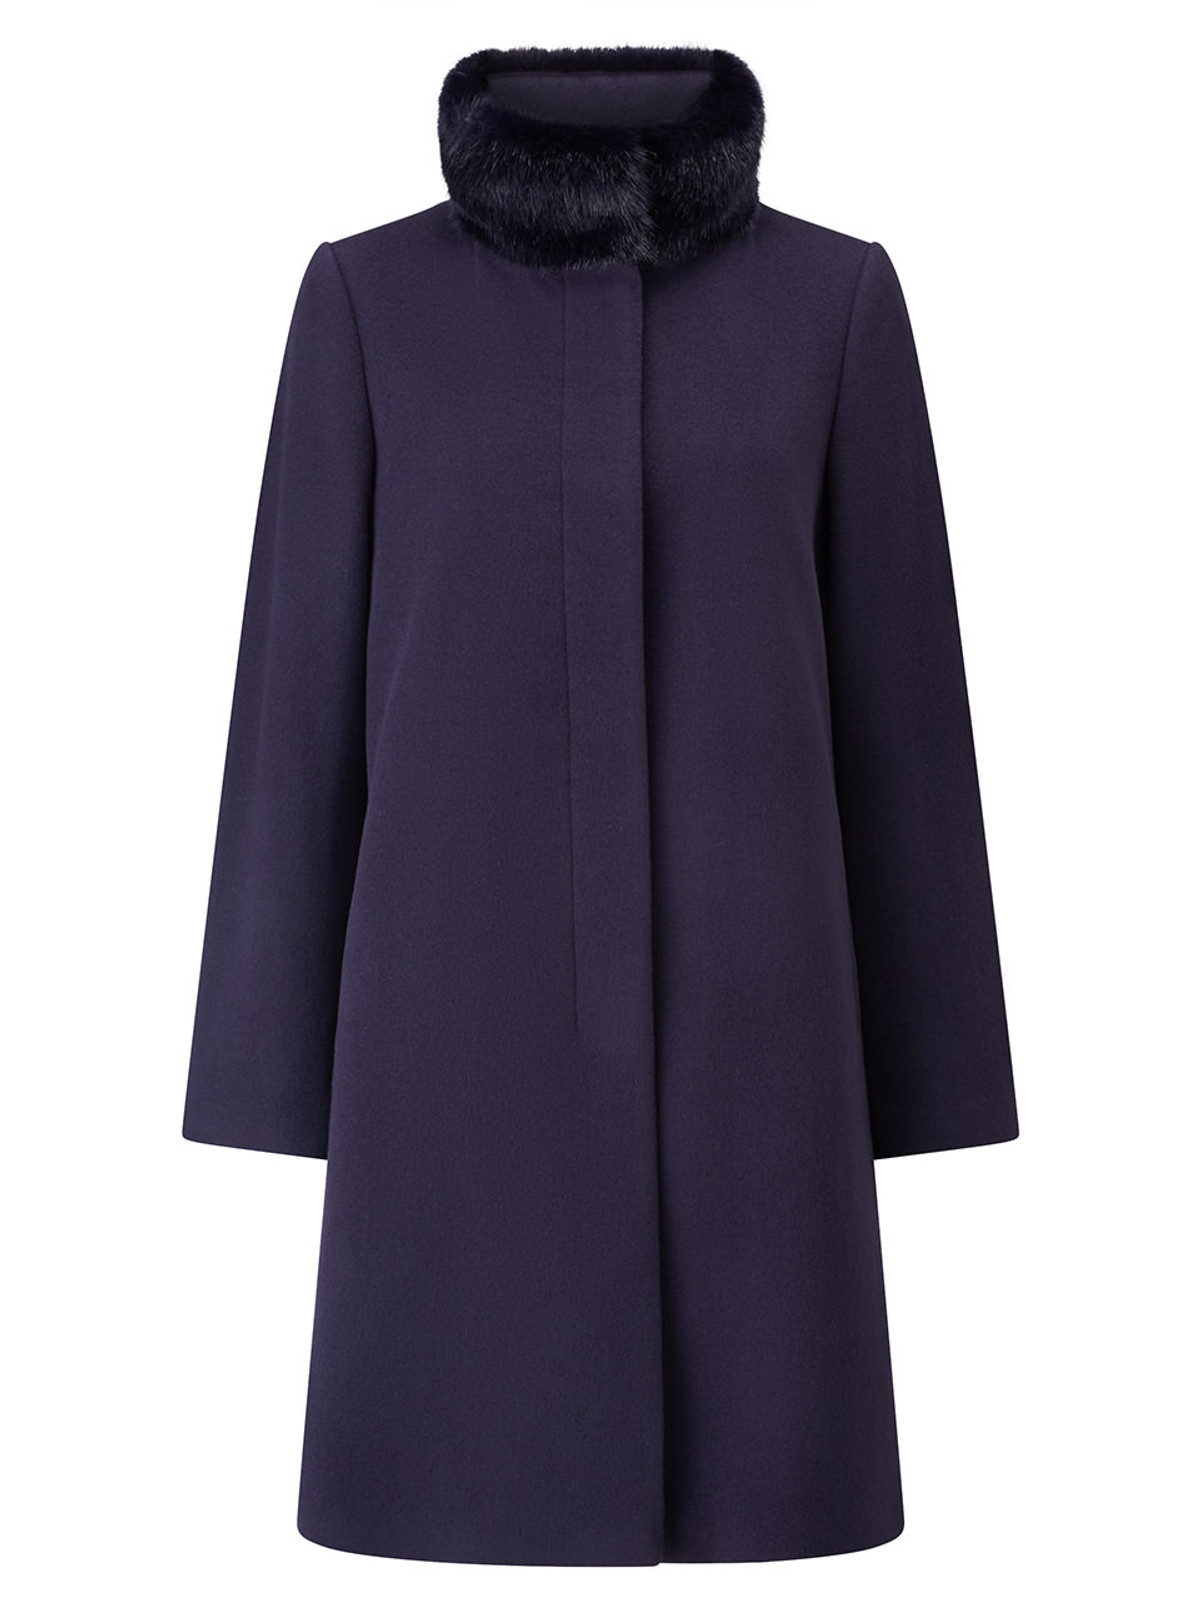 Fly Front Fur Collar Coat, Marine Navy